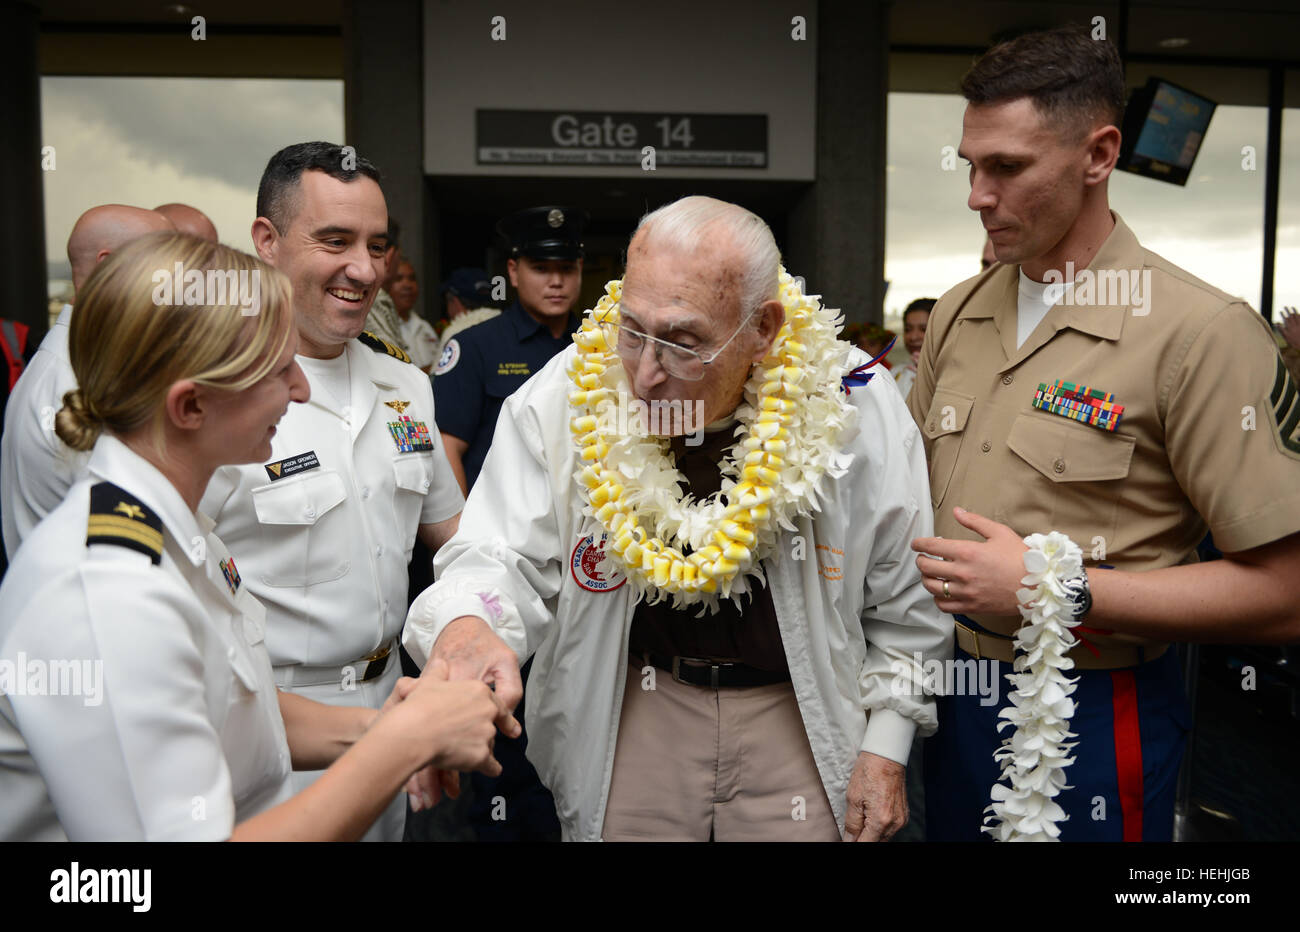 A World War II Pearl Harbor U.S. veteran is greeted by U.S. soldiers with floral leis after arriving at the Honolulu - Stock Image